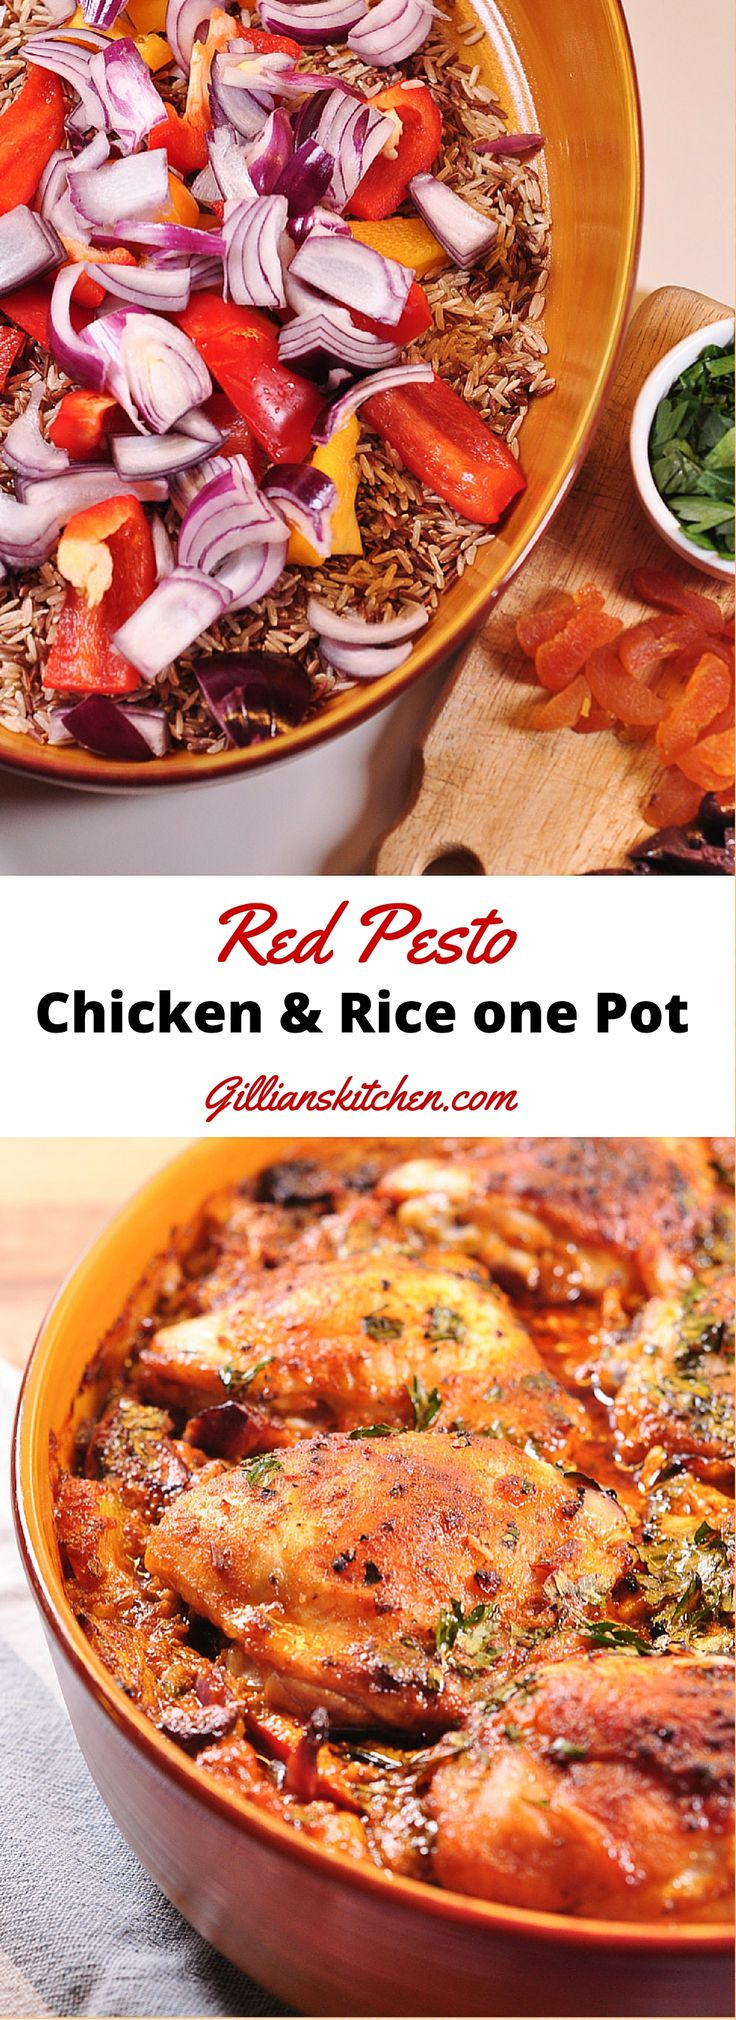 Red+Pesto+Chicken+and+Rice+One+Pot